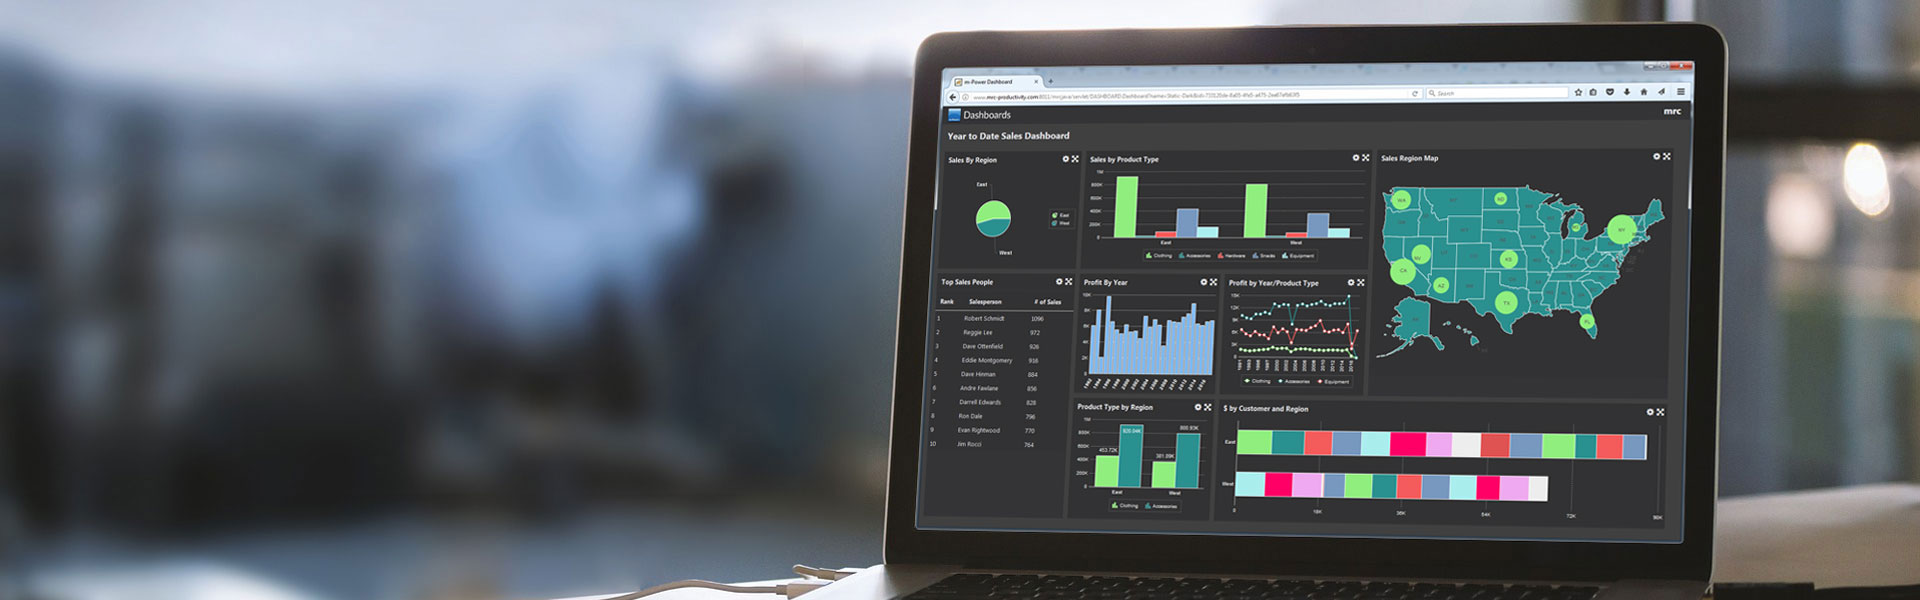 Dashboard features needed in reporting software